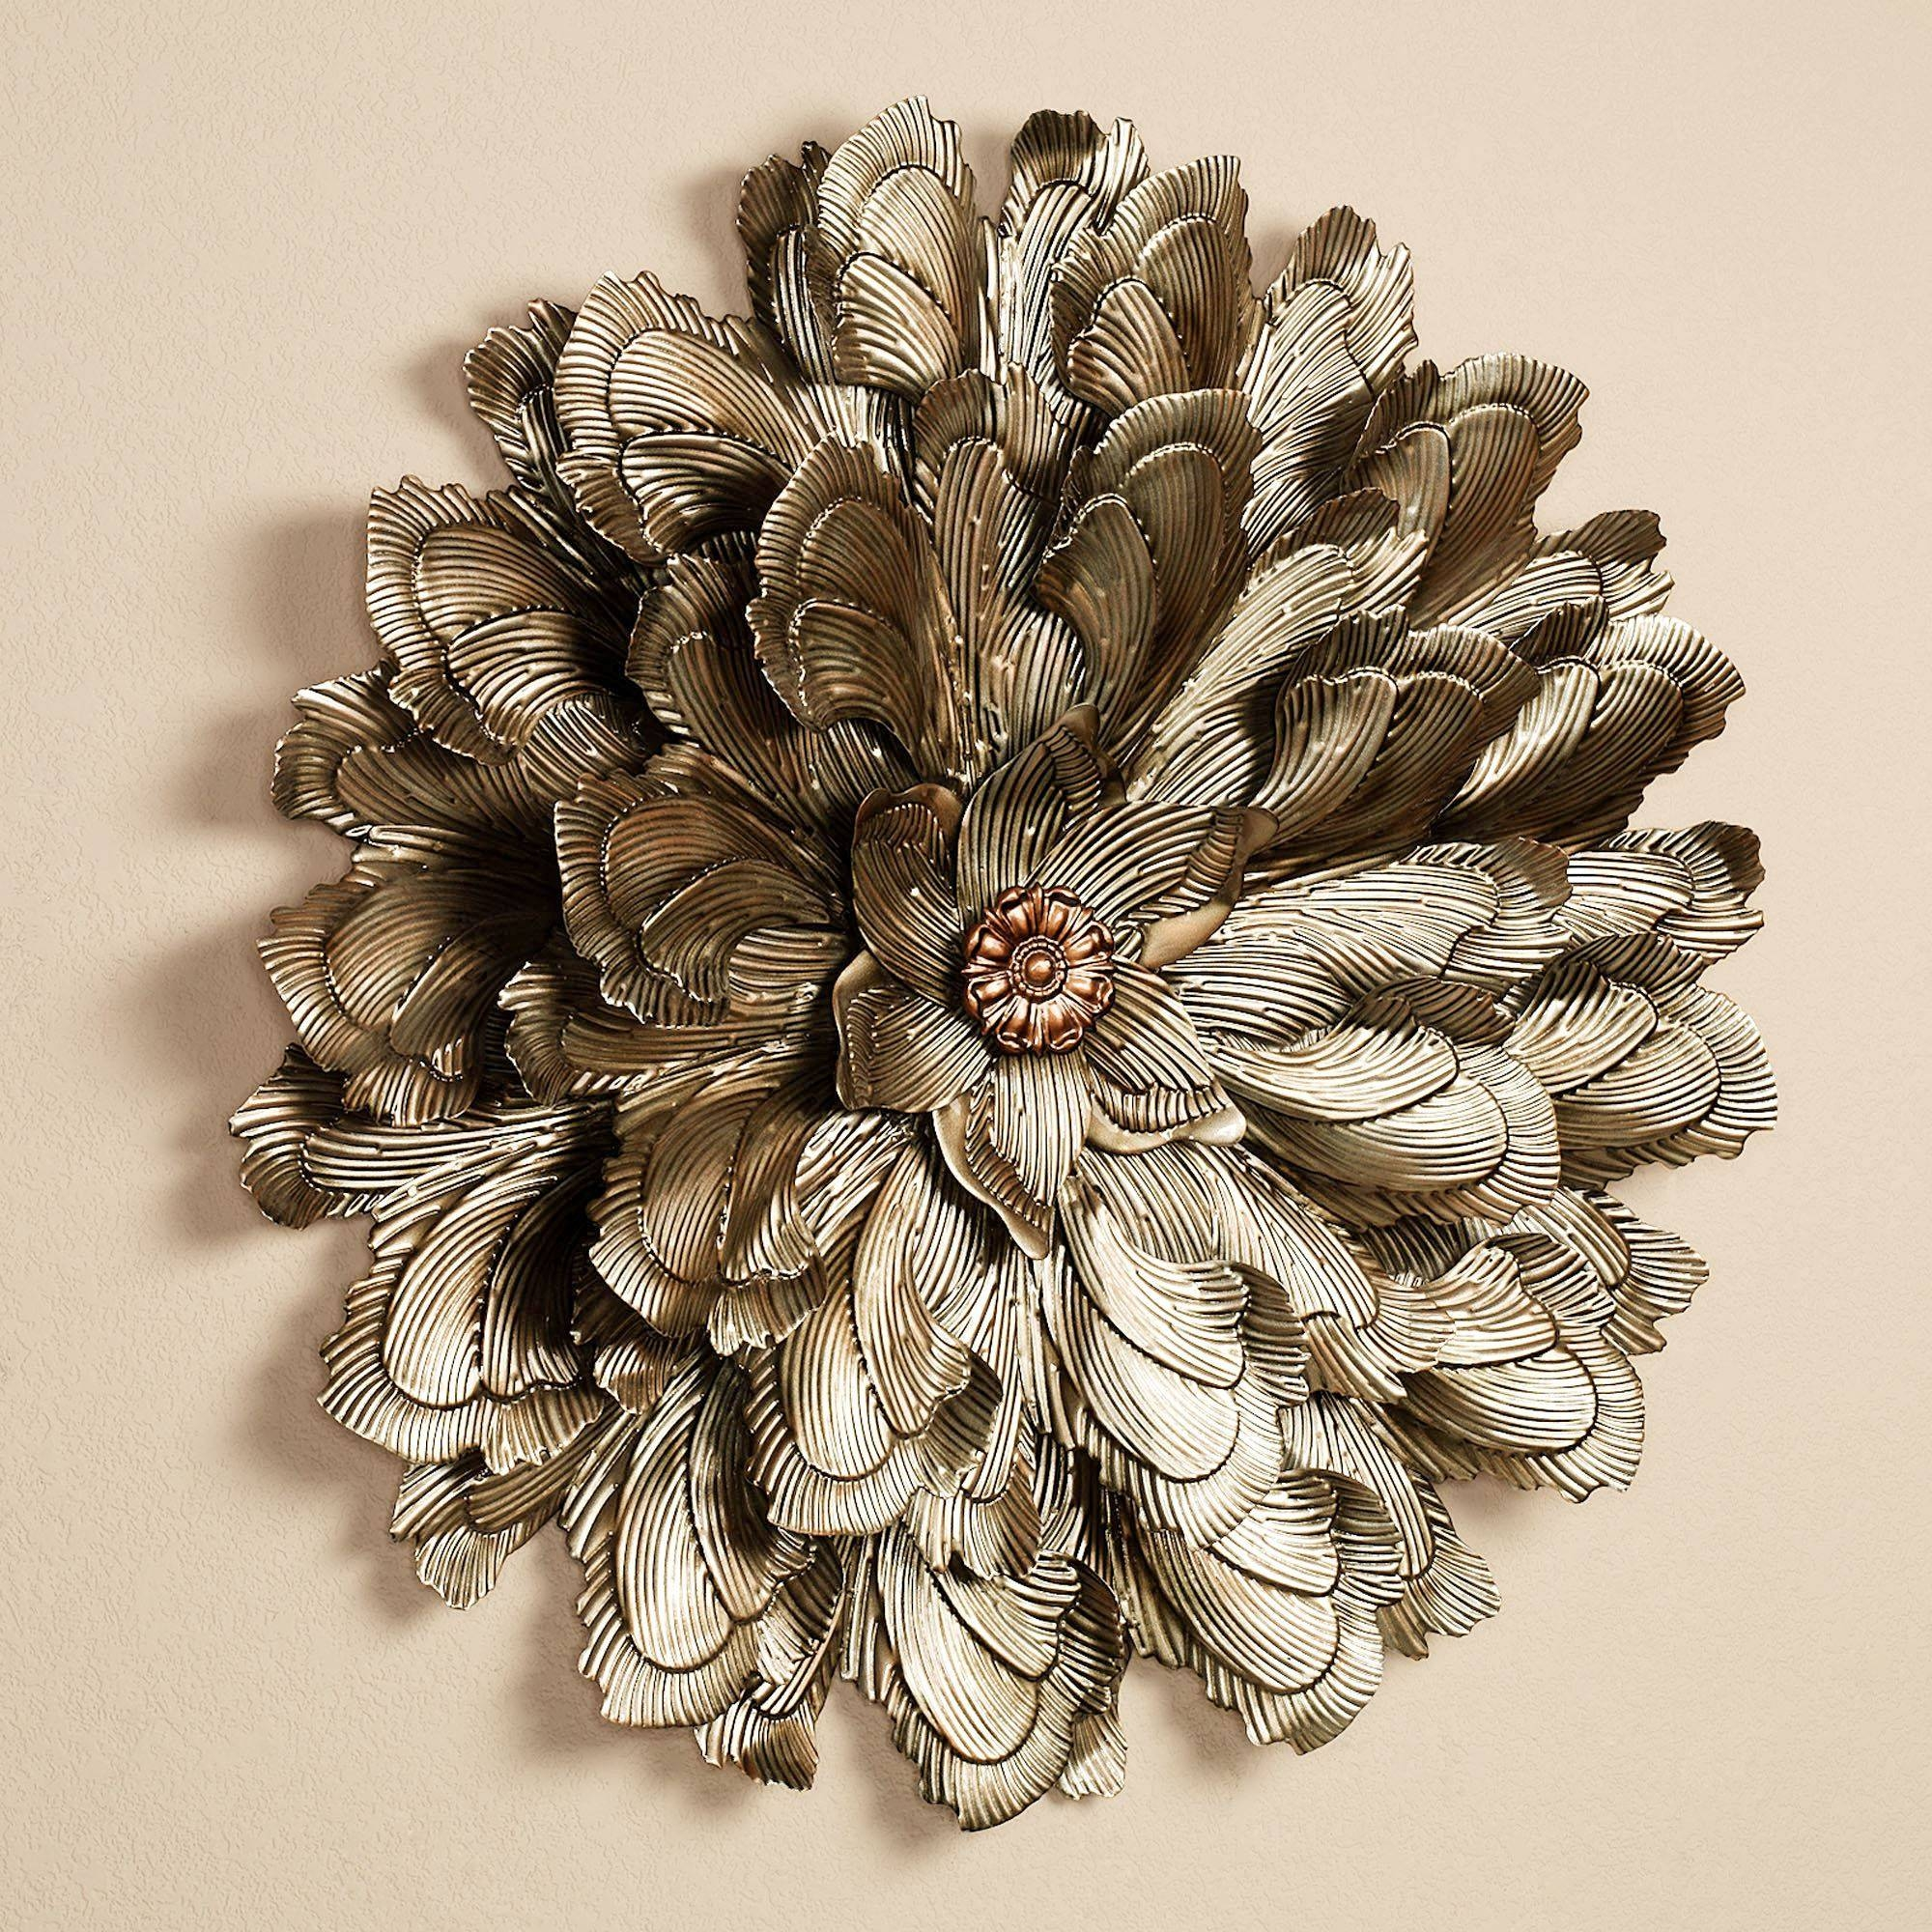 41 Silver Metal Wall Art Flowers, Home Metal Wall Art Wall Decor Within Newest Metal Wall Art Sculptures (View 17 of 20)